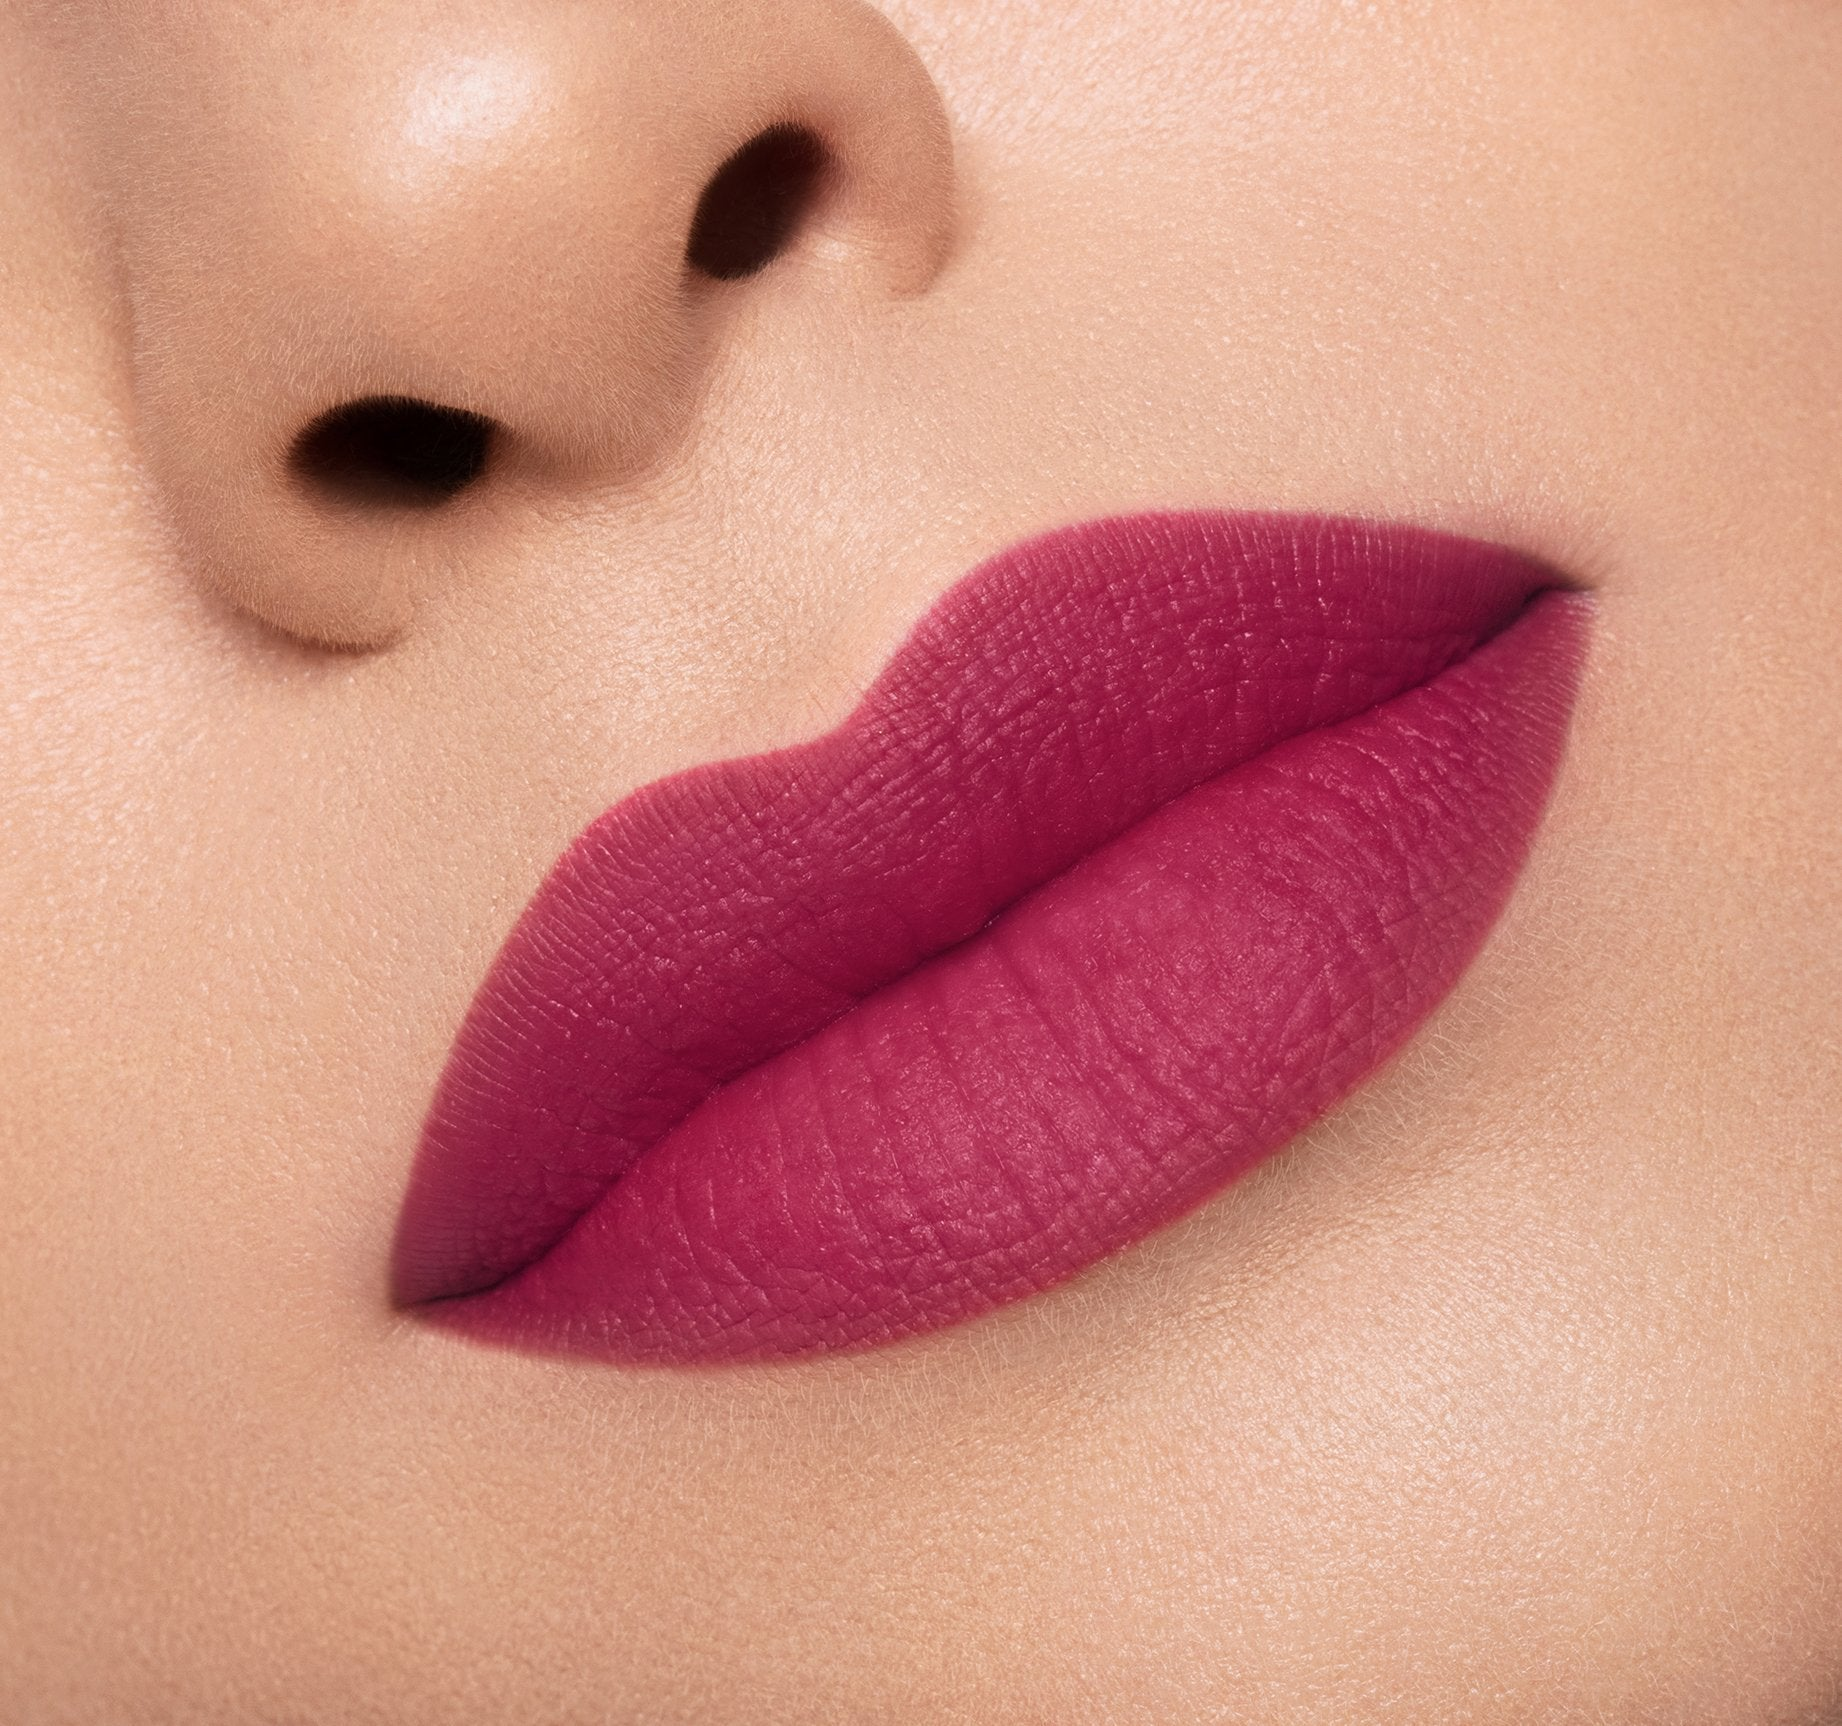 MATTE LIPSTICK - LUST ON MODEL, view larger image